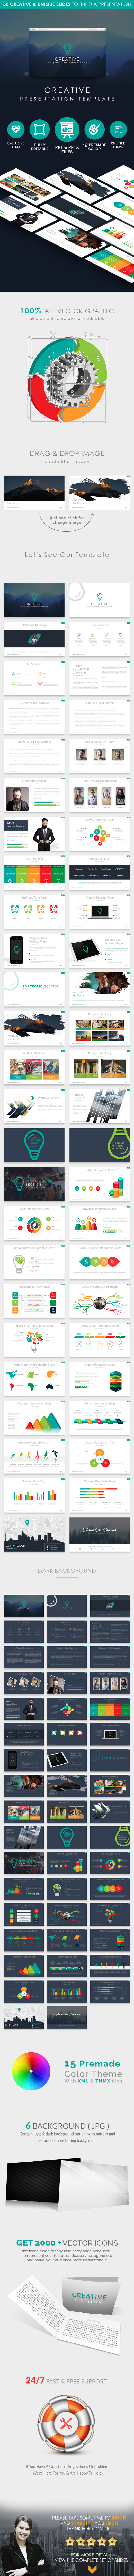 CREATIVE - Multipurpose Presentation Template - Creative PowerPoint Templates